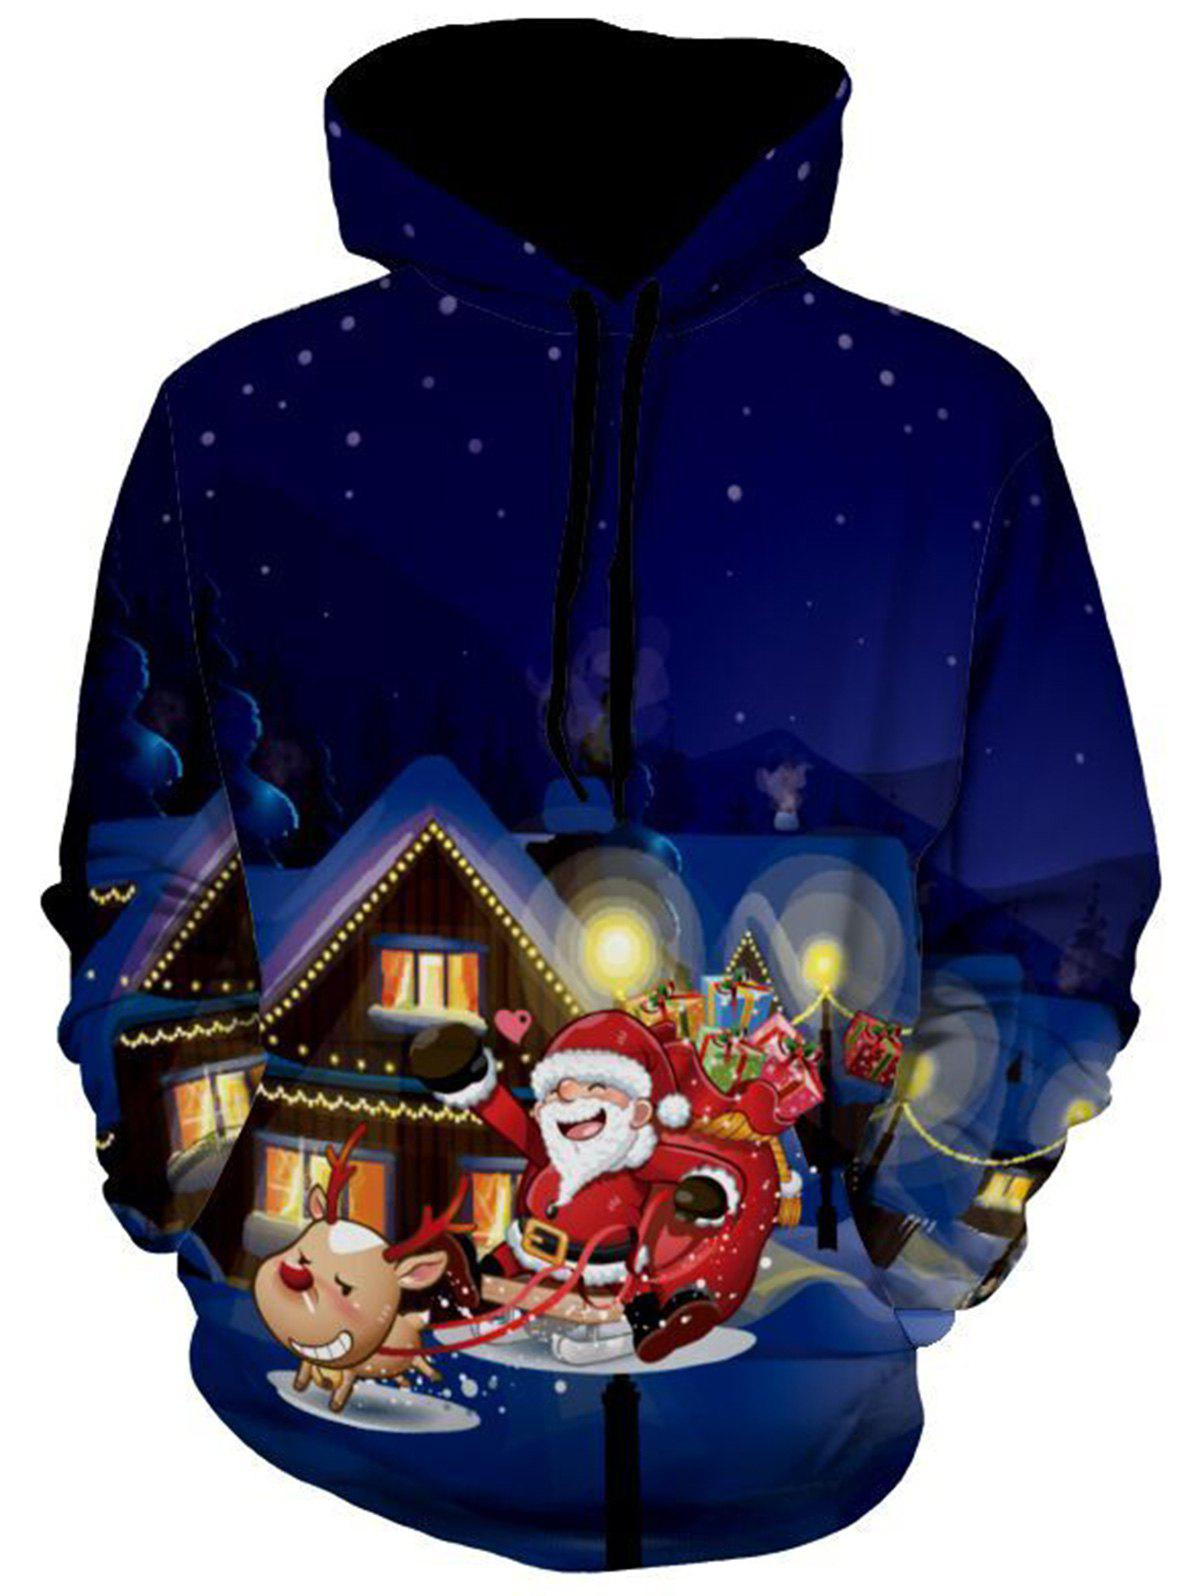 Snowflake Santa Clause Christmas HoodieMEN<br><br>Size: 3XL; Color: COLORMIX; Material: Polyester,Spandex; Shirt Length: Regular; Sleeve Length: Full; Style: Fashion; Patterns: Print; Weight: 0.5500kg; Package Contents: 1 x Hoodie;